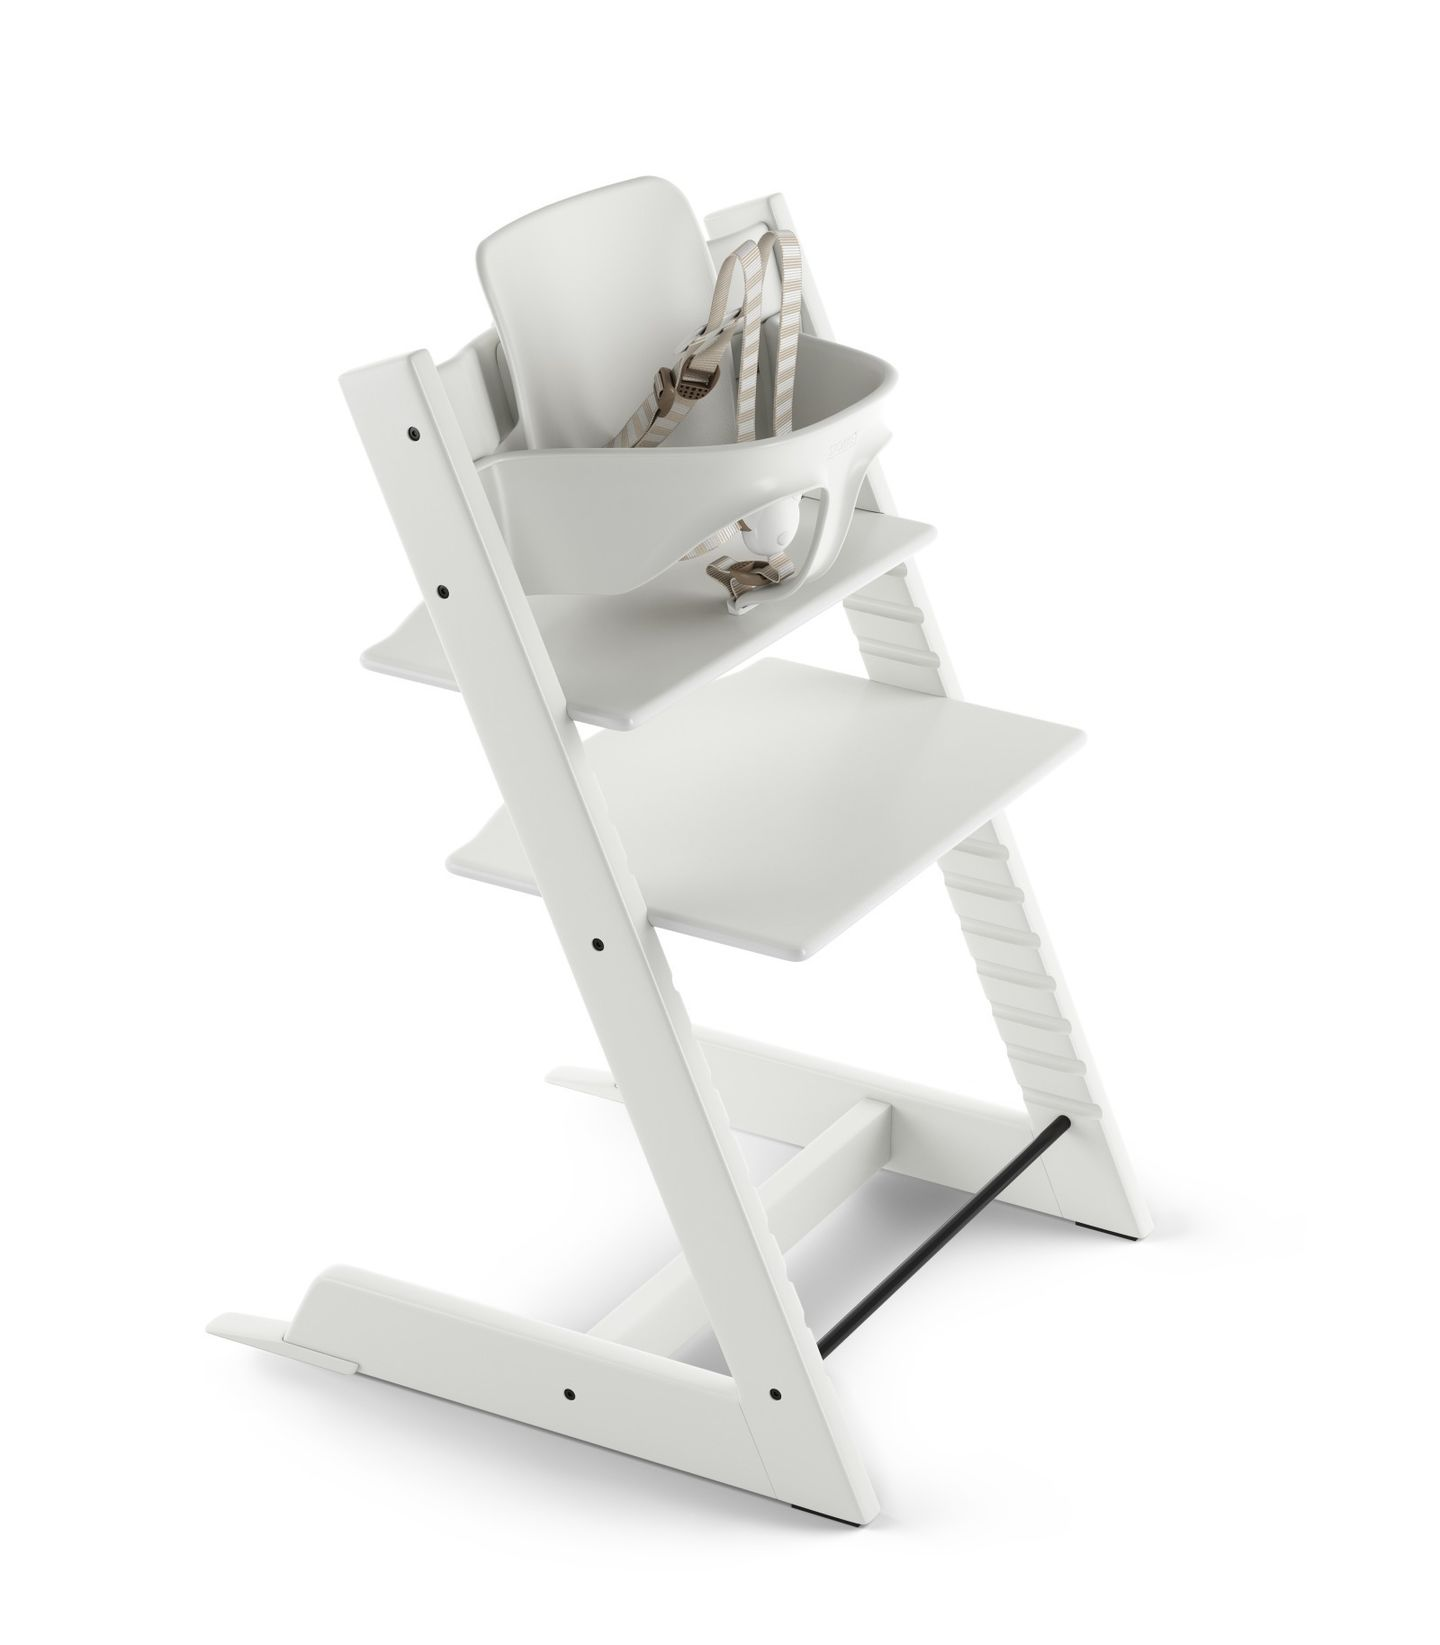 stokke chair harness mid century modern leather desk tripp trapp baby set with white destination